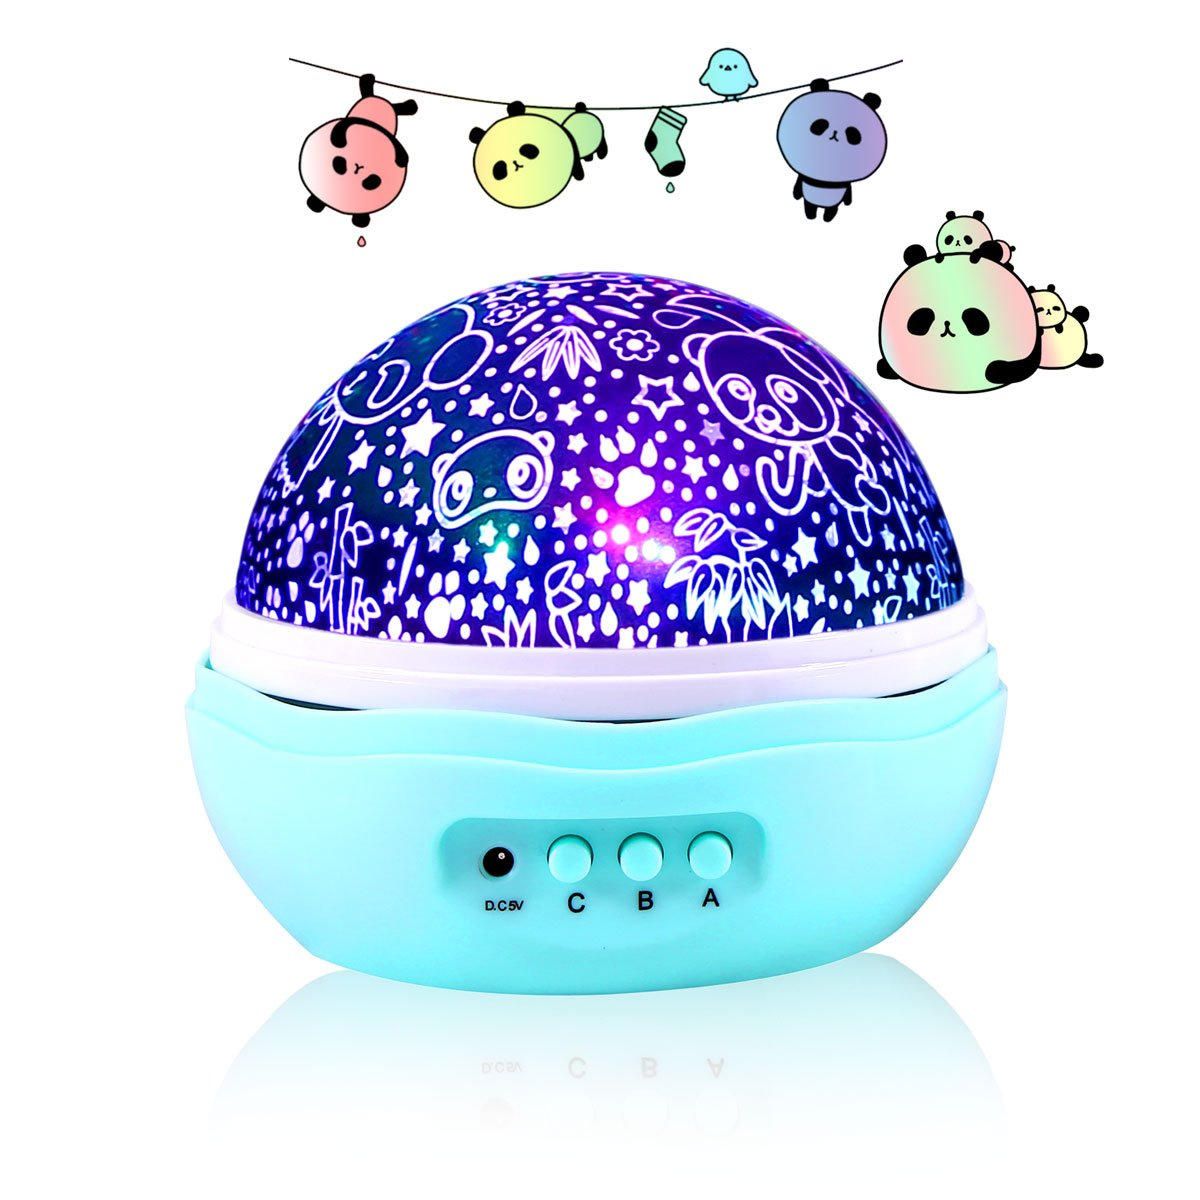 Cute Panda Projector Night Light, 360 Degree Rotation With 8 Light Modes - Perfect for Bedroom, Baby and Kid's Room [Wall Adapter Included] B07B4D2BF4 13746 Mini Cute Pandas Mini Cute Pandas